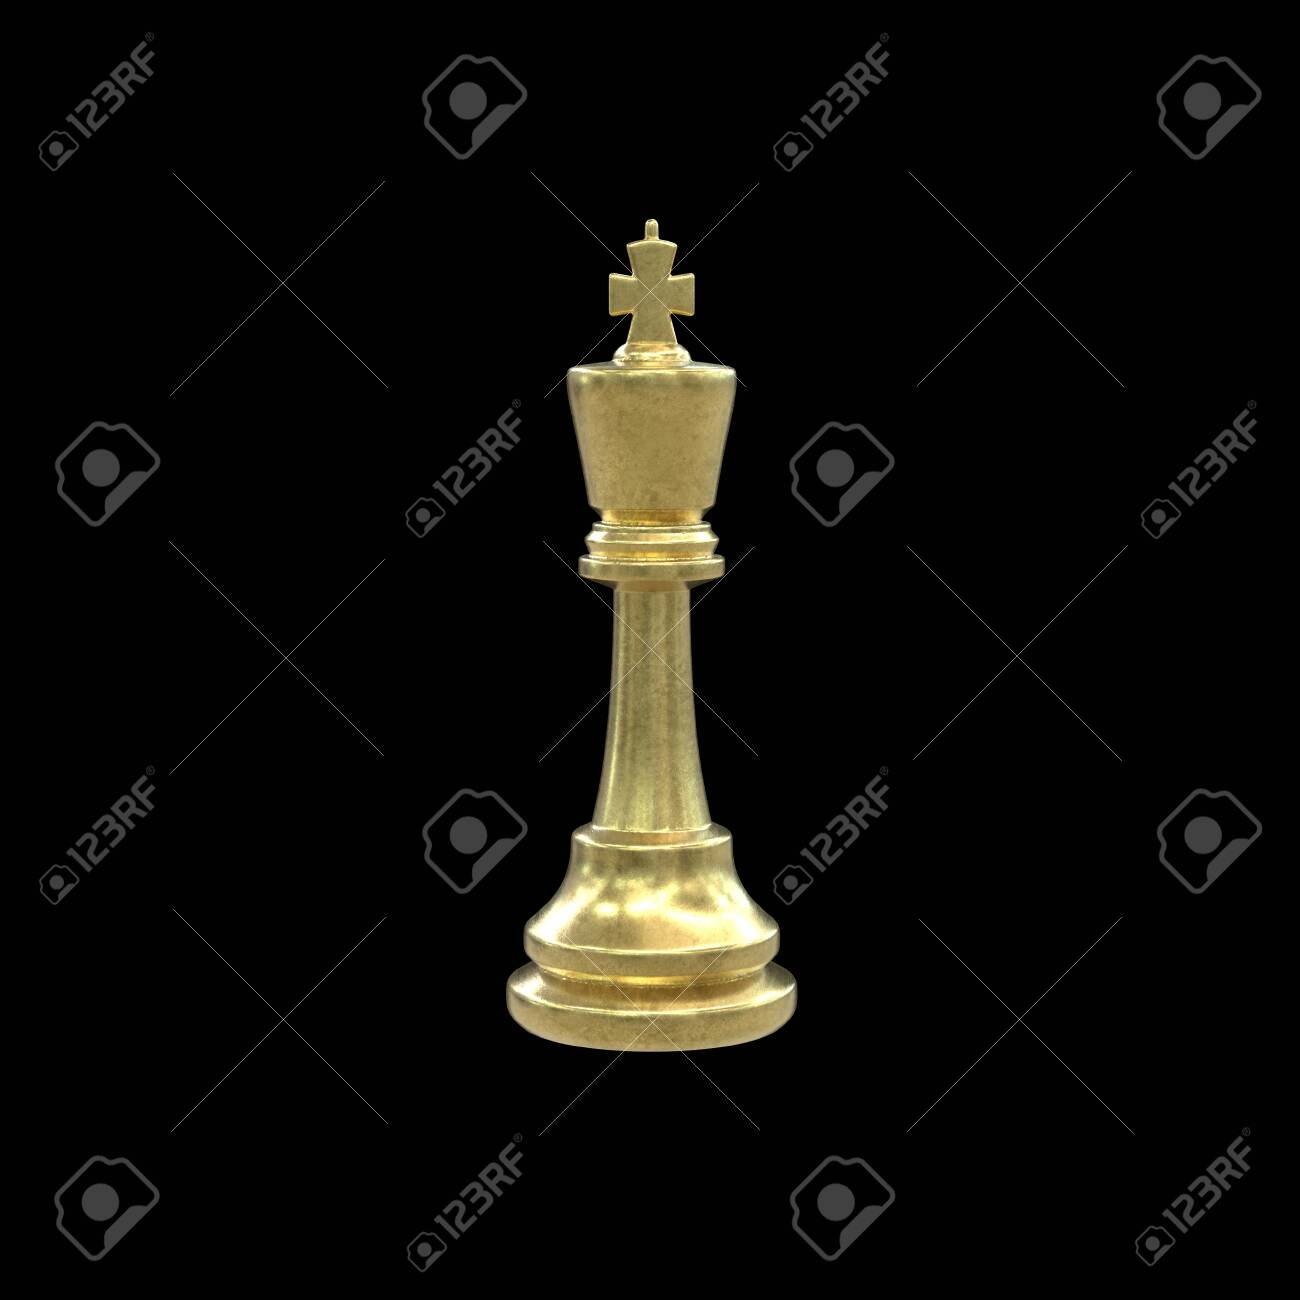 3d illustration of gold chess king isolated on black background. Minimalist render of strategy game piece with golden texture. - 152391951